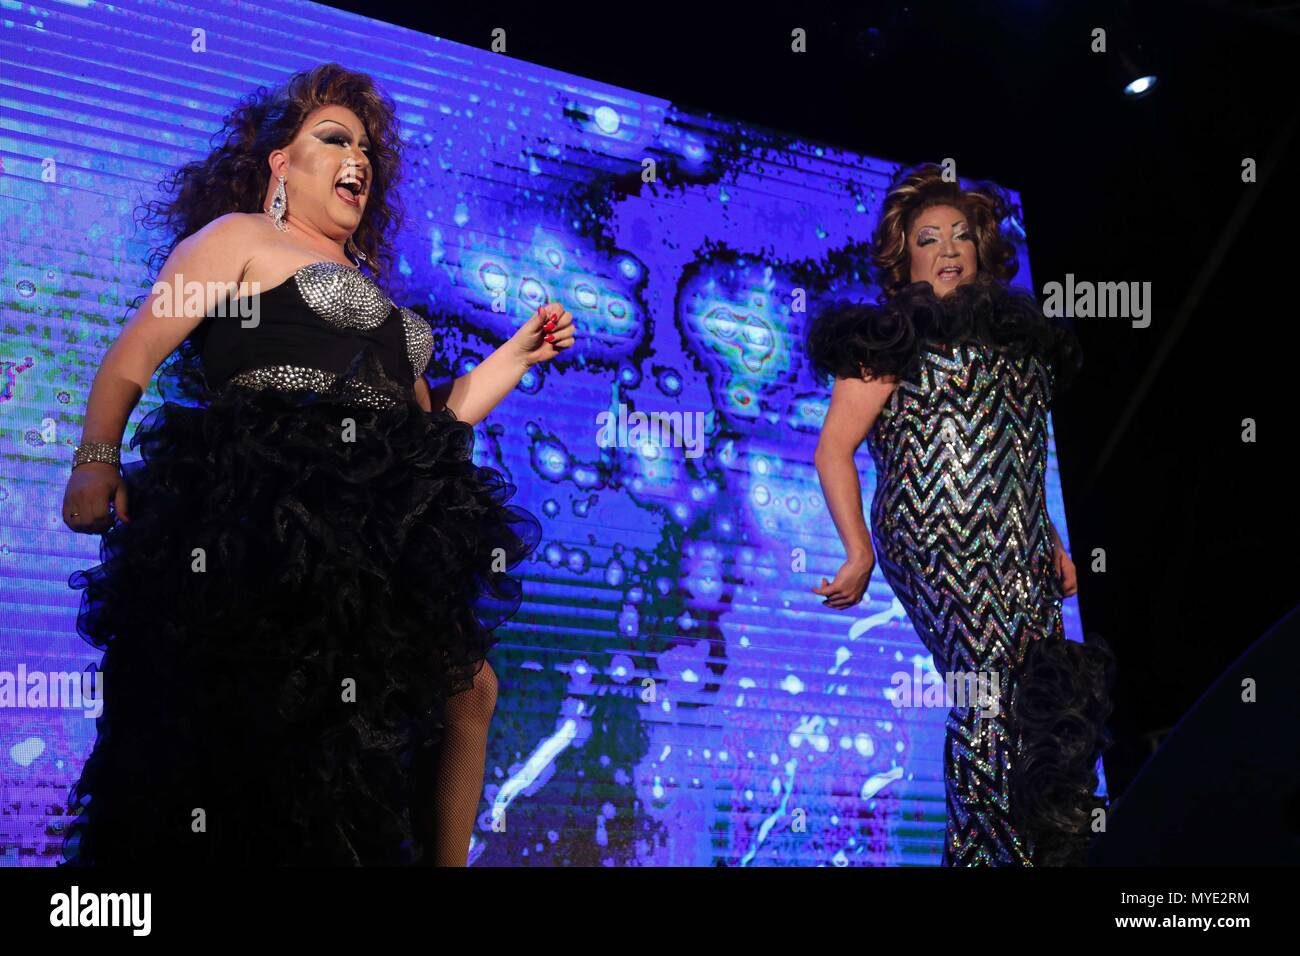 Tel Aviv, Israel. 6th June, 2018. Drag queens perform a show during the 2018 Wigstock event, part of the Tel Aviv Pride Week, in Tel Aviv, Israel, on June 6, 2018. Credit: JINI/Gideon Marrkowicz/Xinhua/Alamy Live News - Stock Image